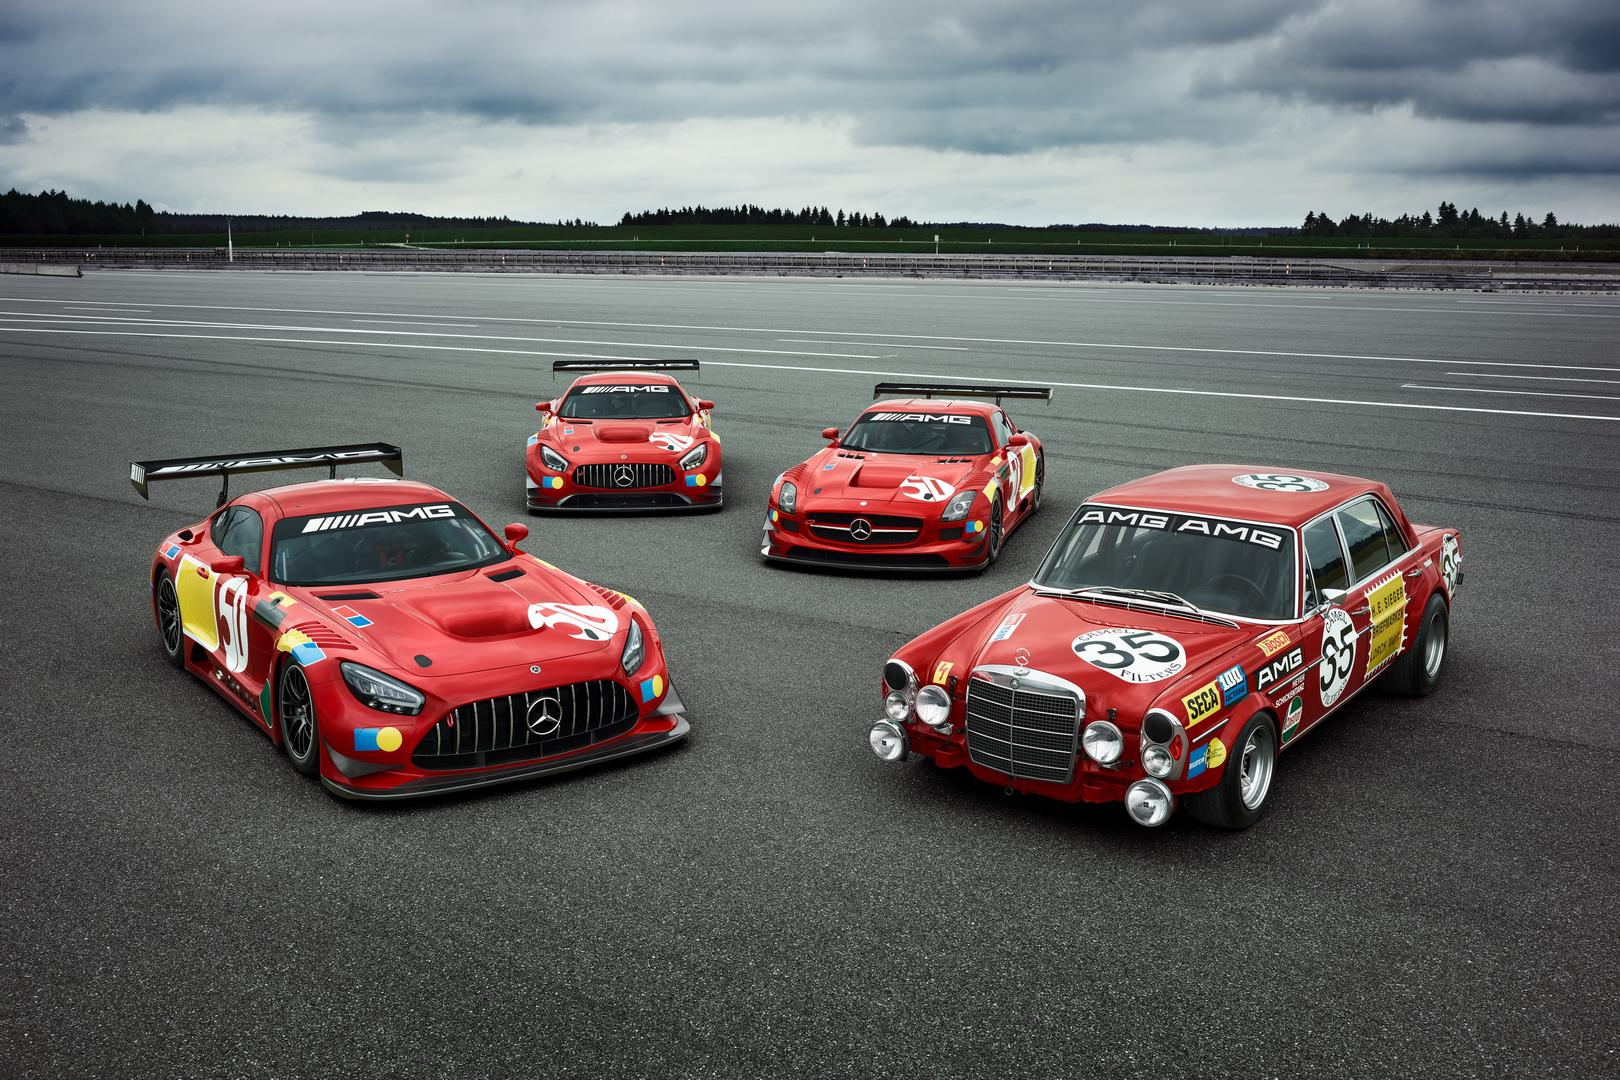 50 Years Legend of Spa50 Years Legend of Spa